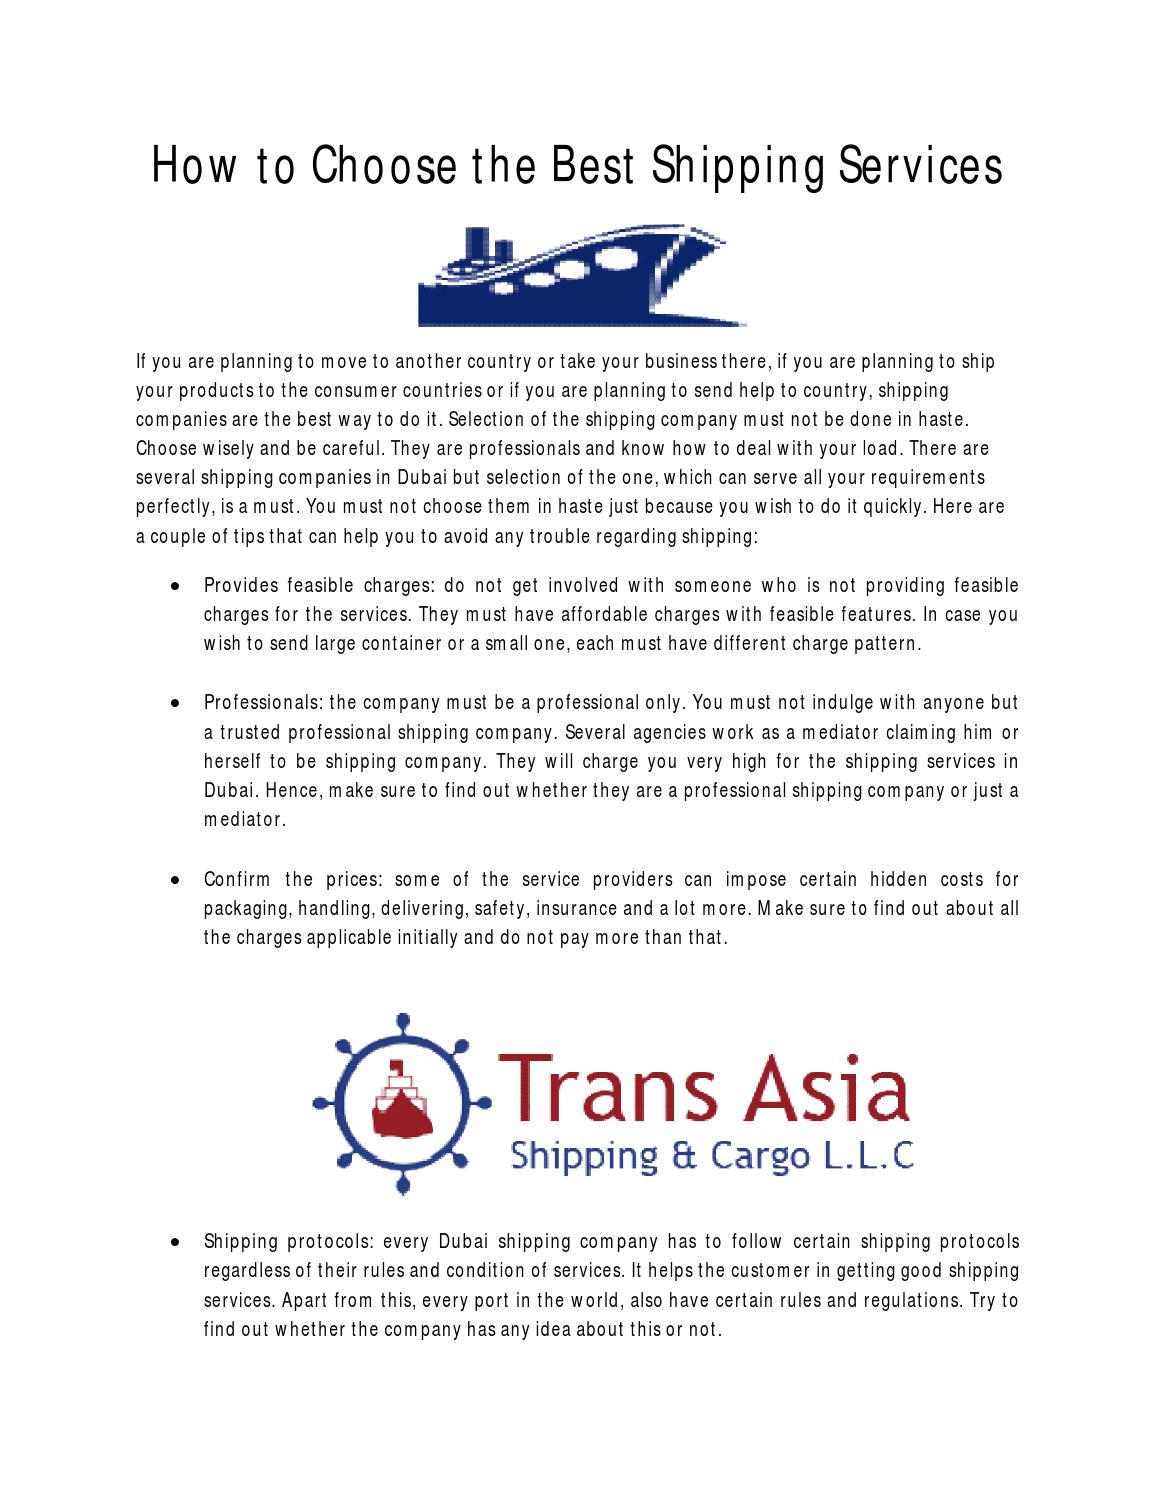 How to choose the best shipping services by Sabirah Tannous